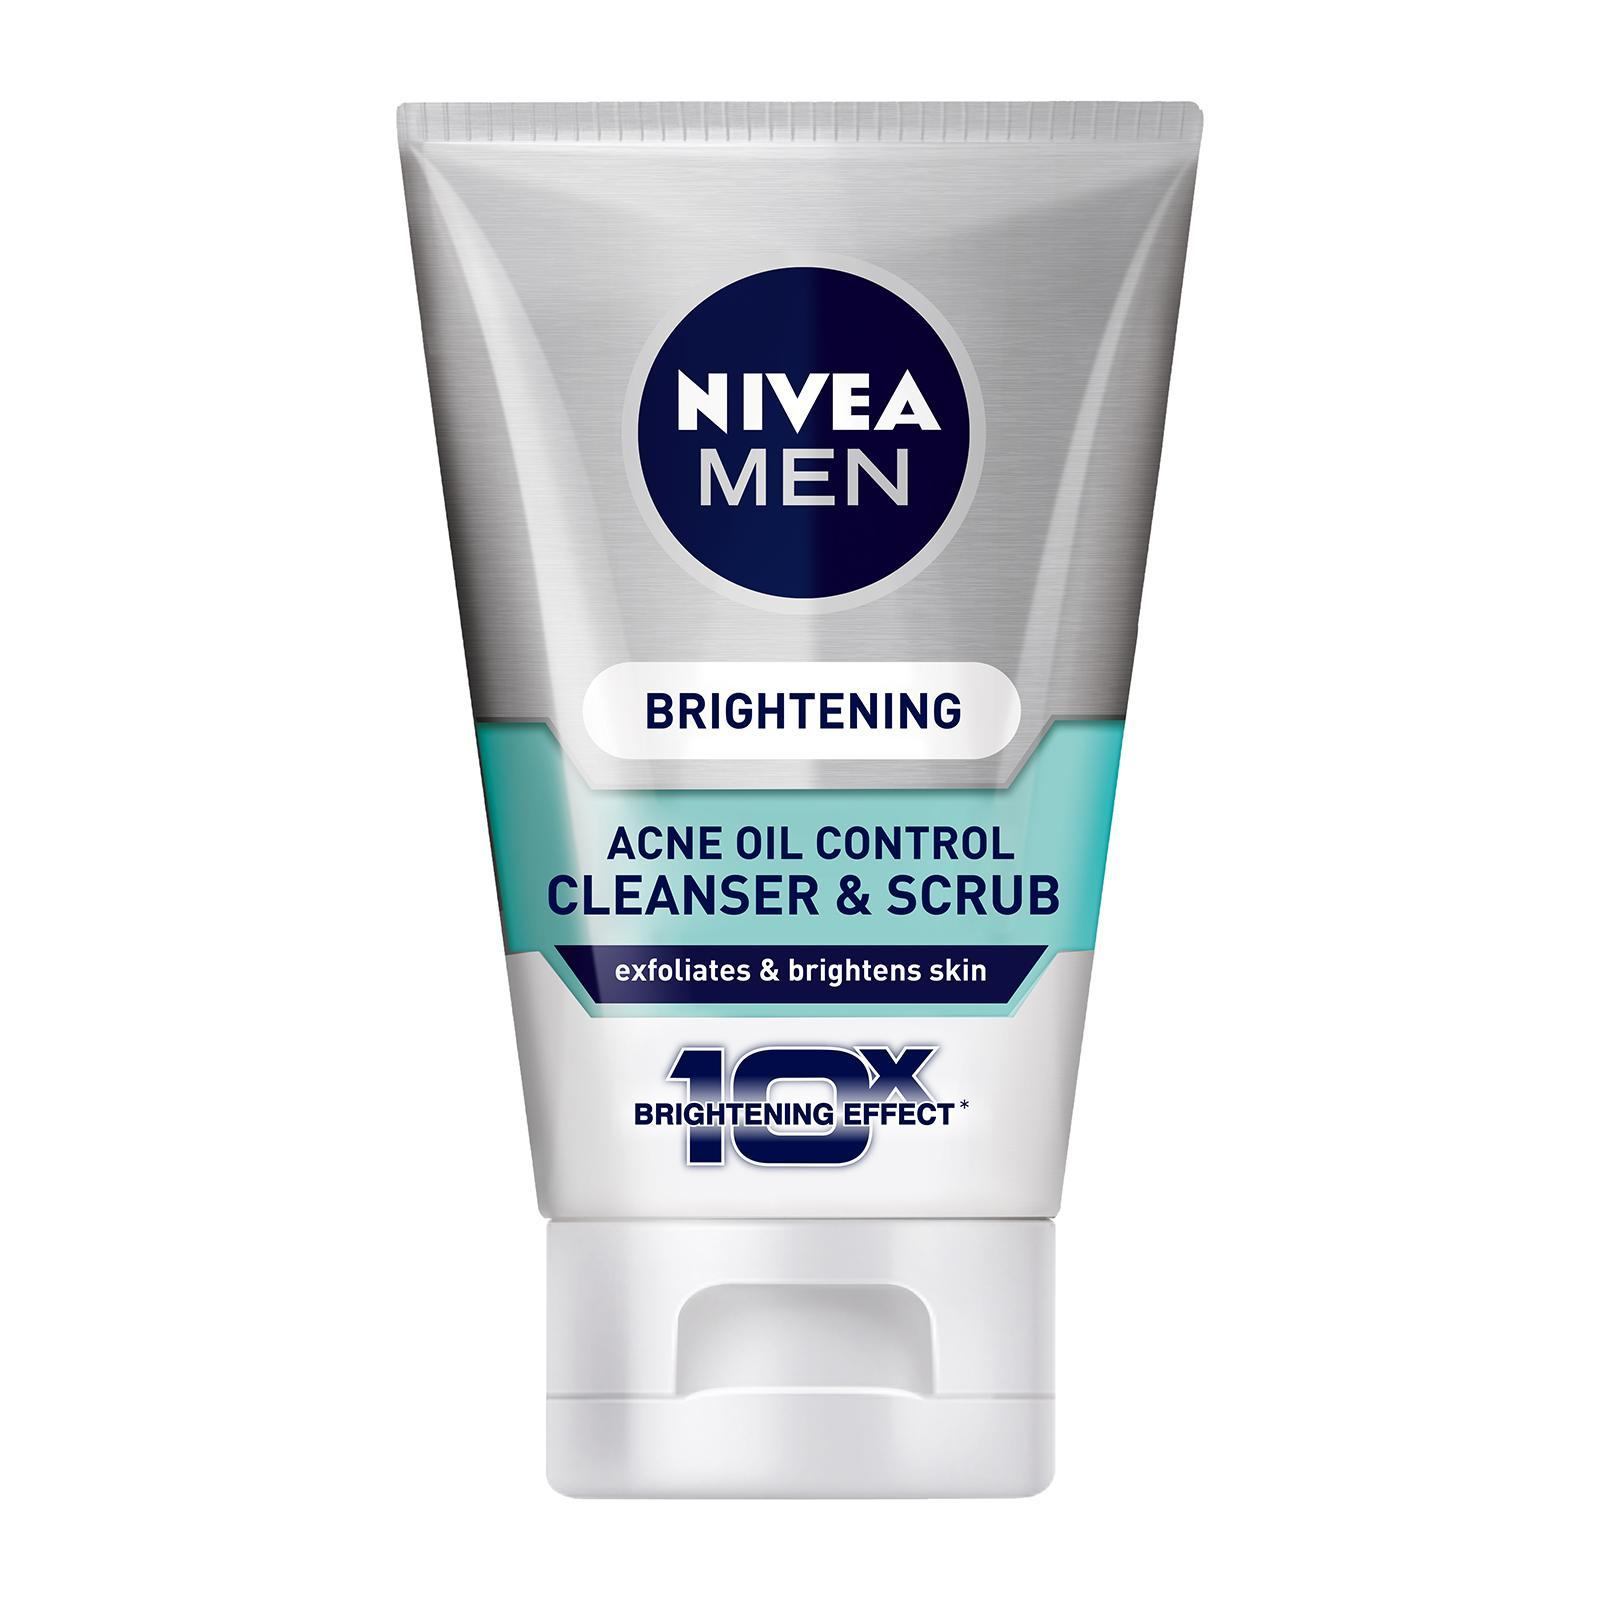 Nivea Men Face Care Cleanser Brightening Acne Oil Control Cleanser And Scrub Travel Size